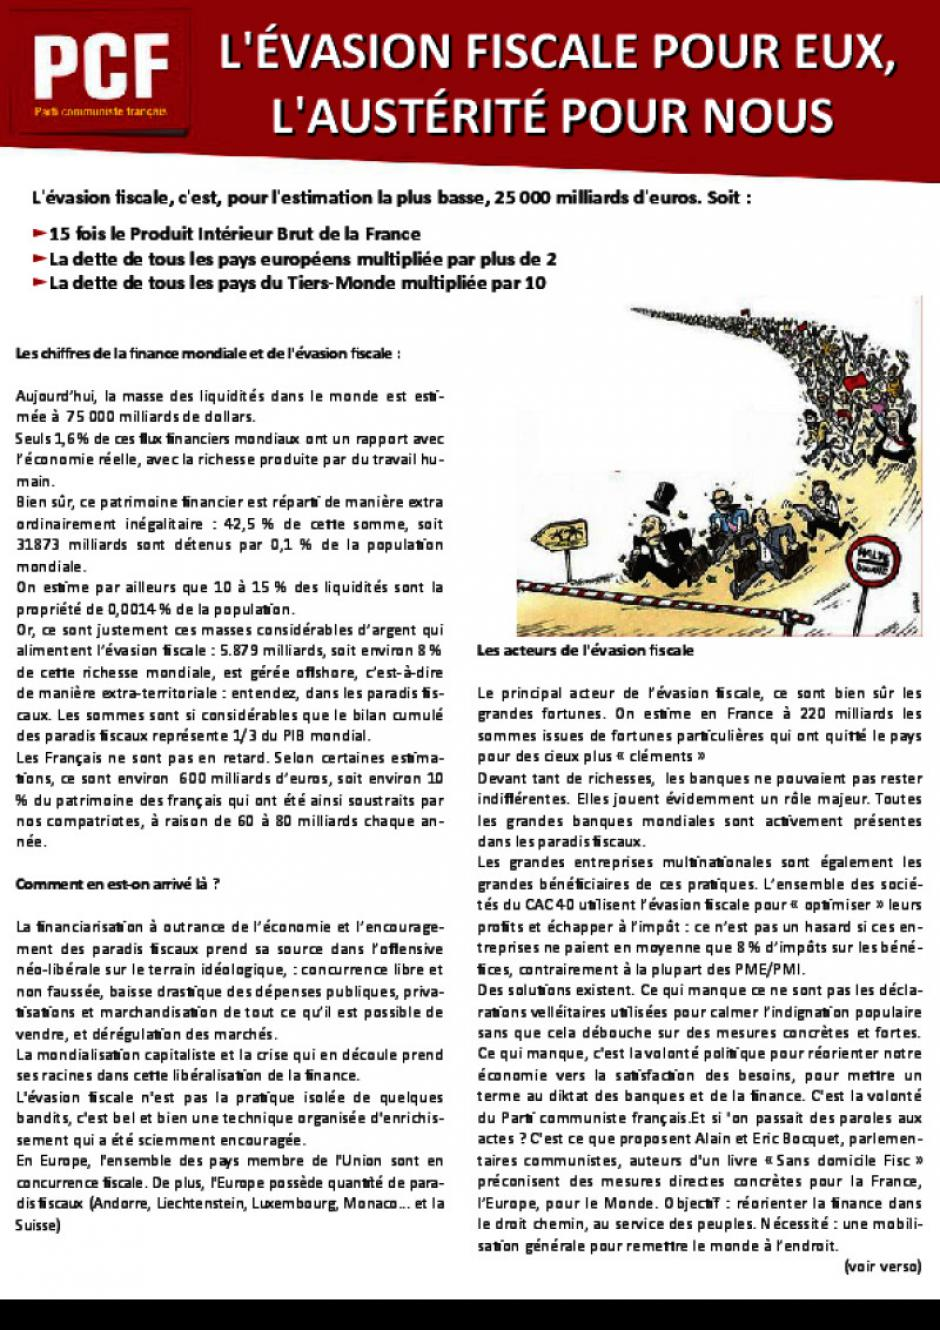 TRACT (22/10/16)